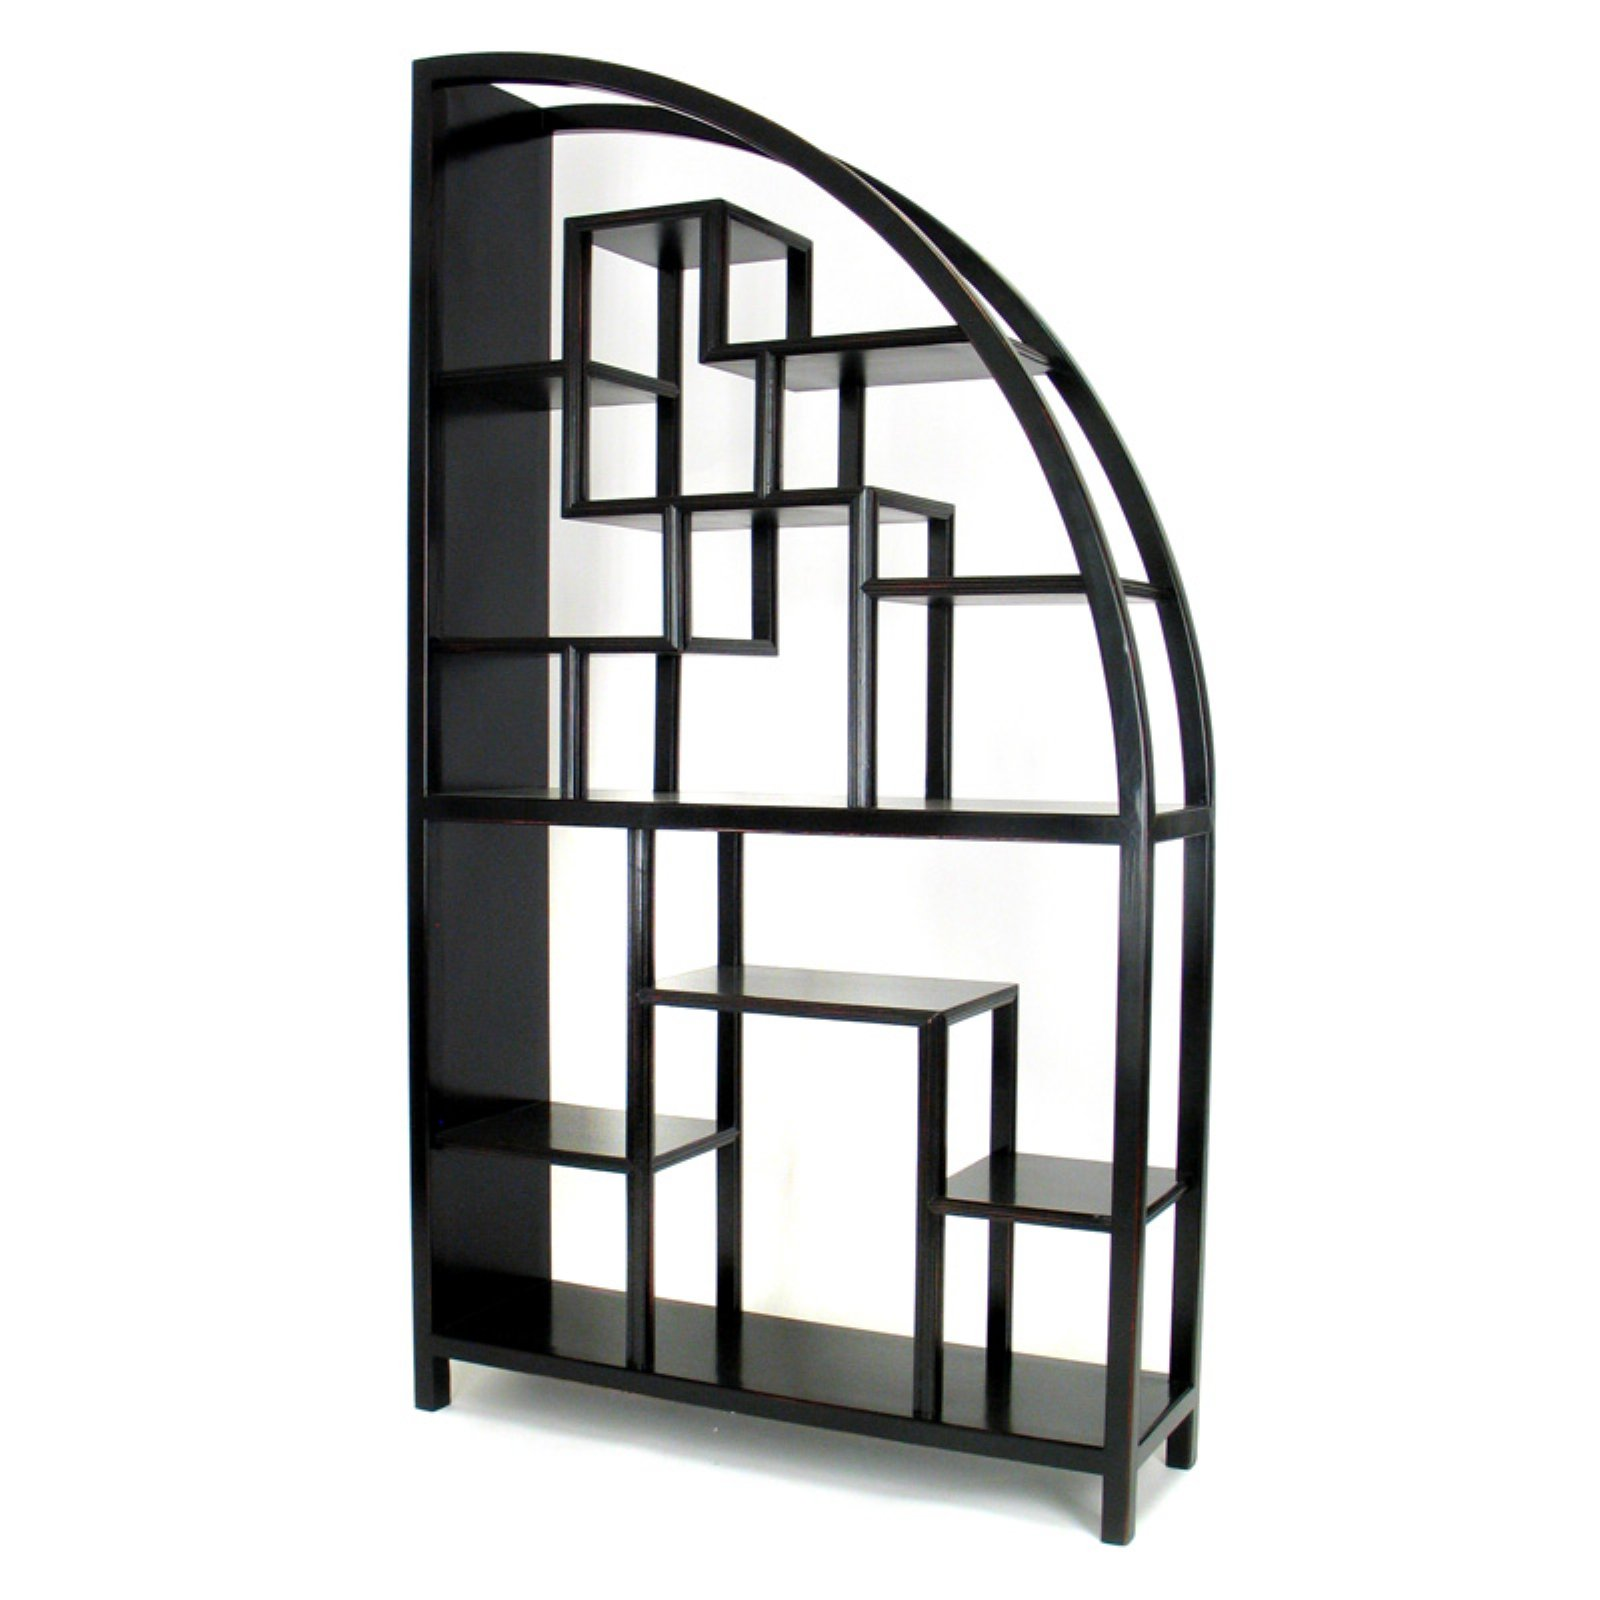 Wayborn Hangchu Display Bookcase Room Divider Black Walmartcom